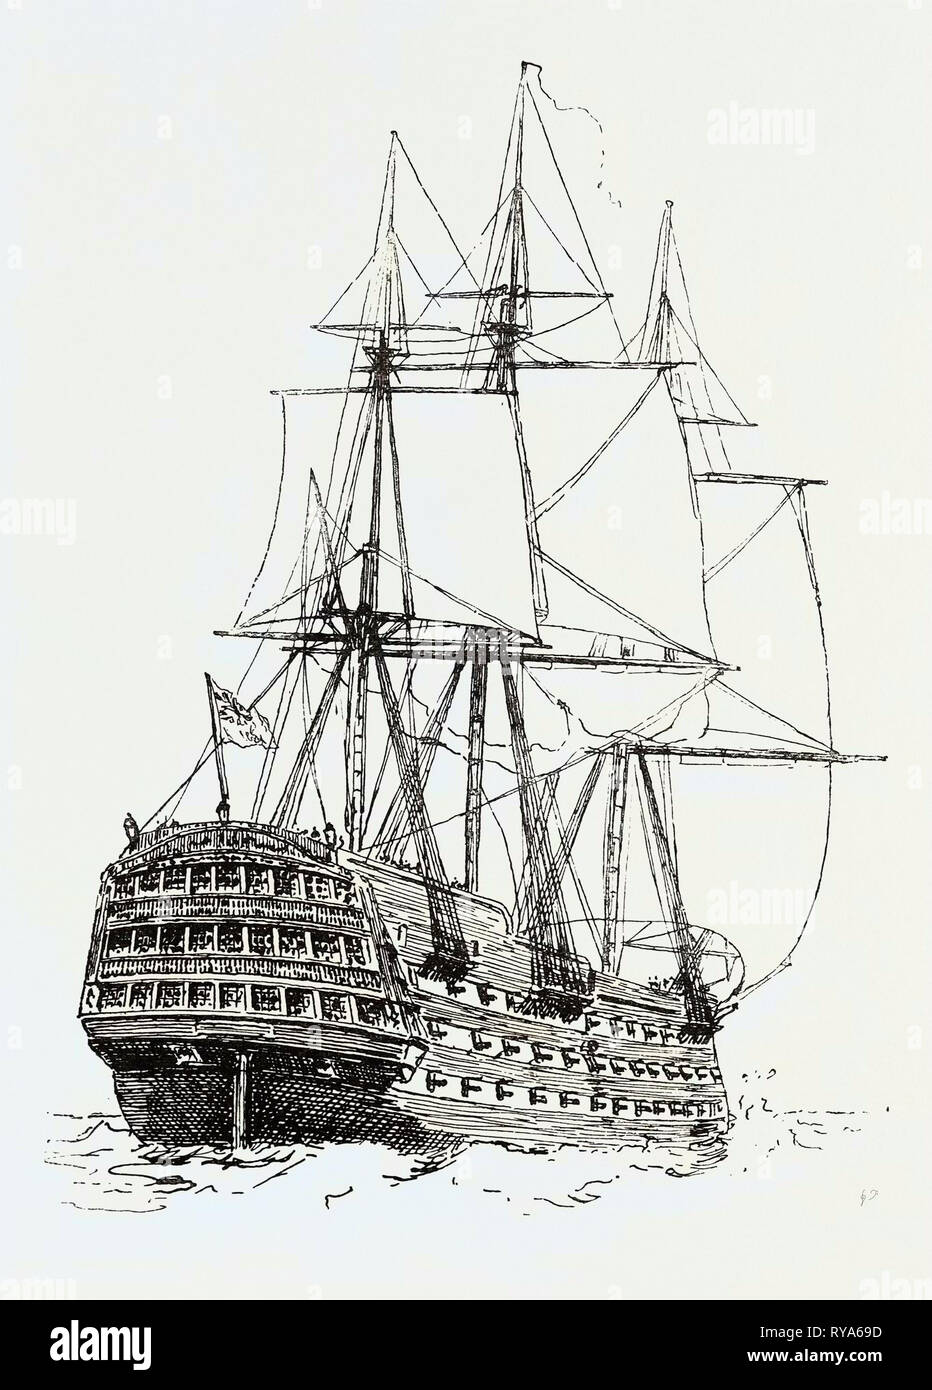 Model of the Victory Nelson's Ship at Trafalgar - Stock Image